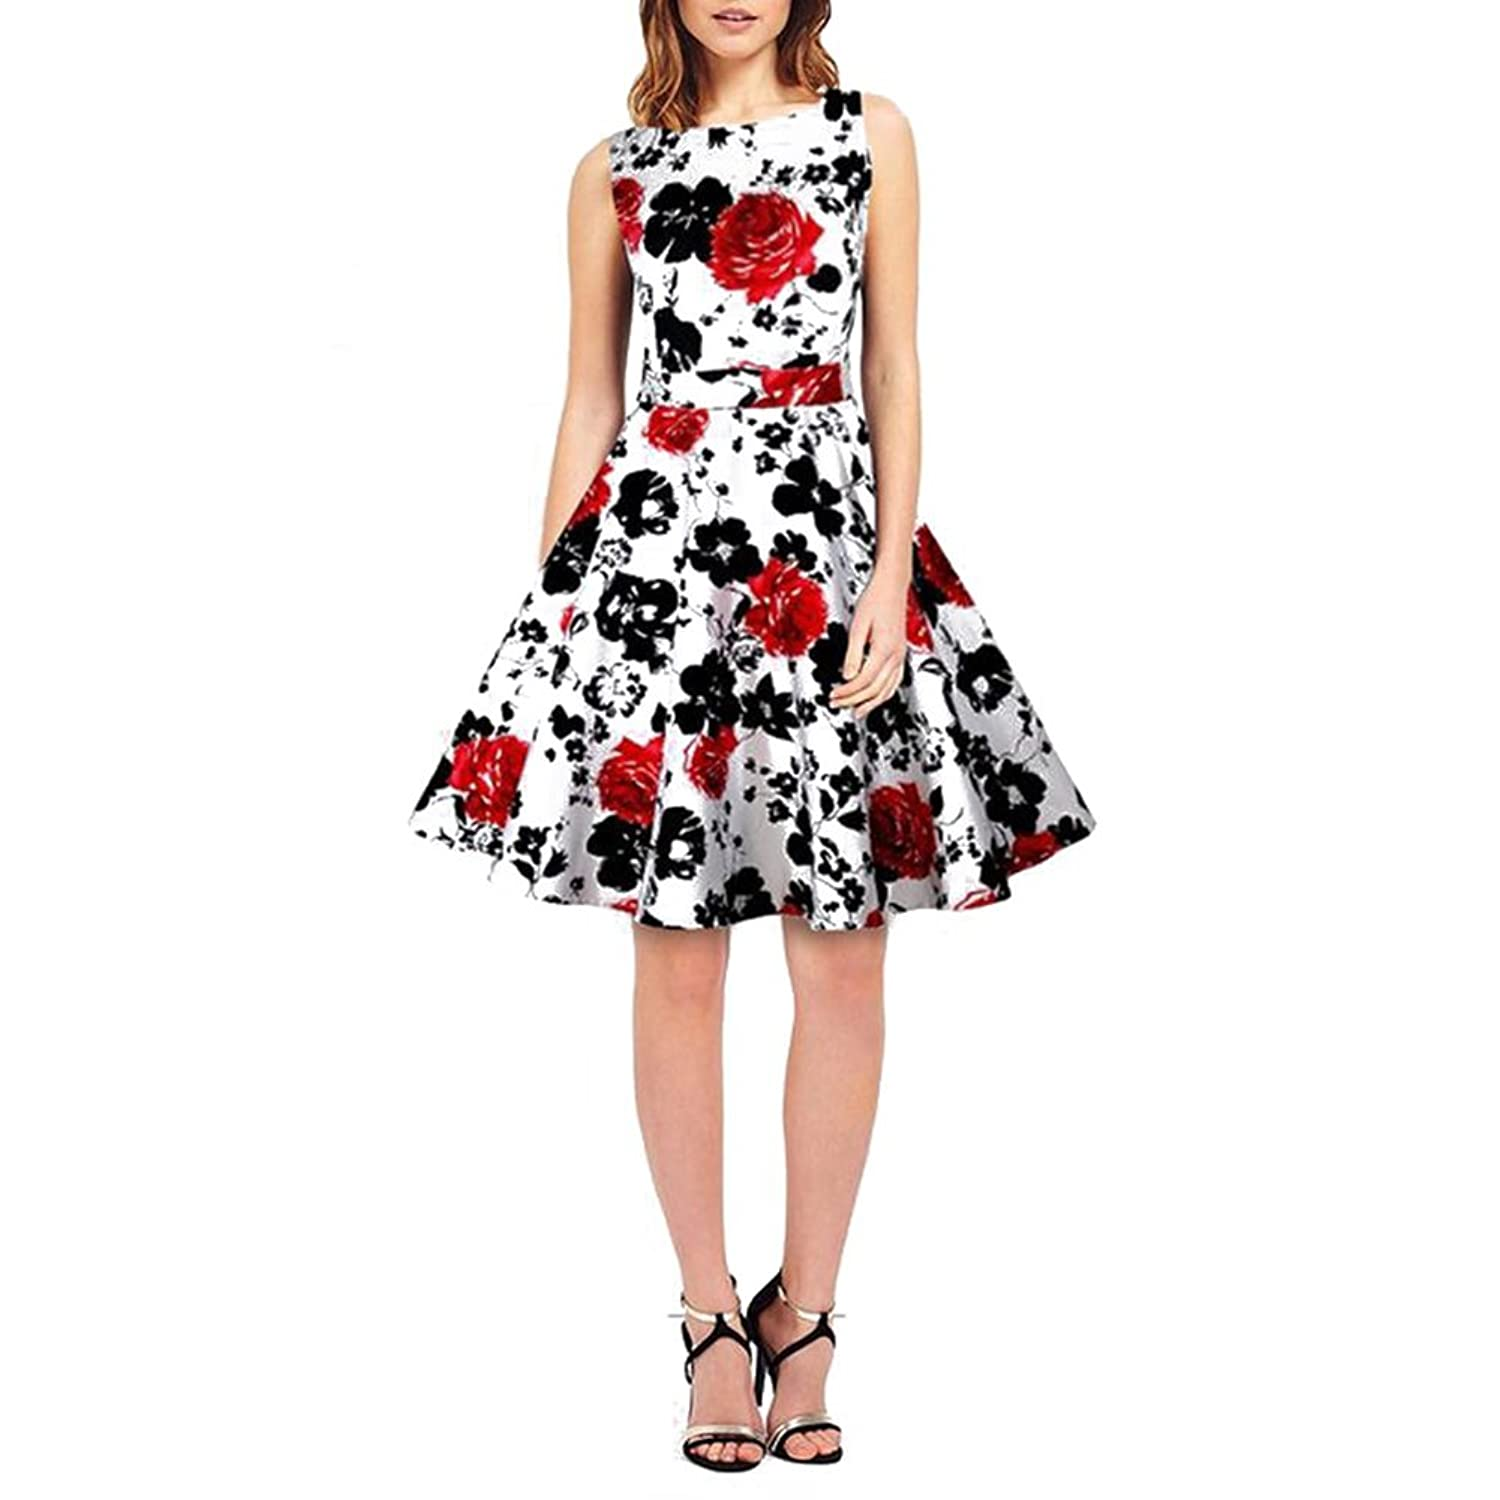 Highdas Damen Retro Vintage Party Cocktailkleider Floral Sommerkleid ...